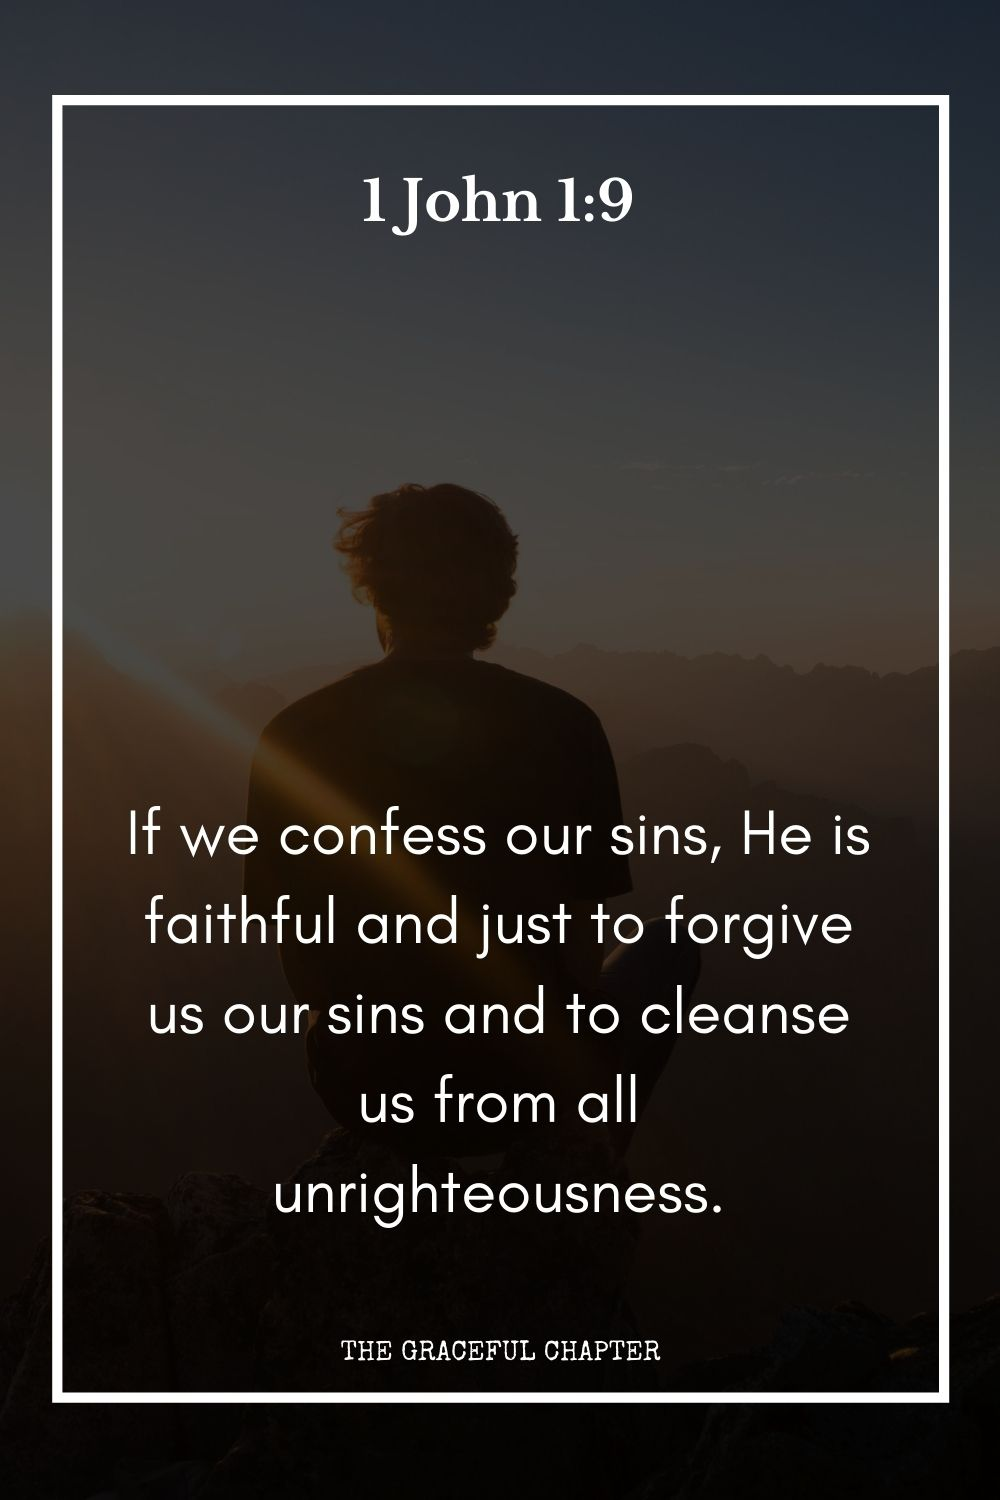 If we confess our sins, He is faithful and just to forgive us our sins and to cleanse us from all unrighteousness.1 John 1:9